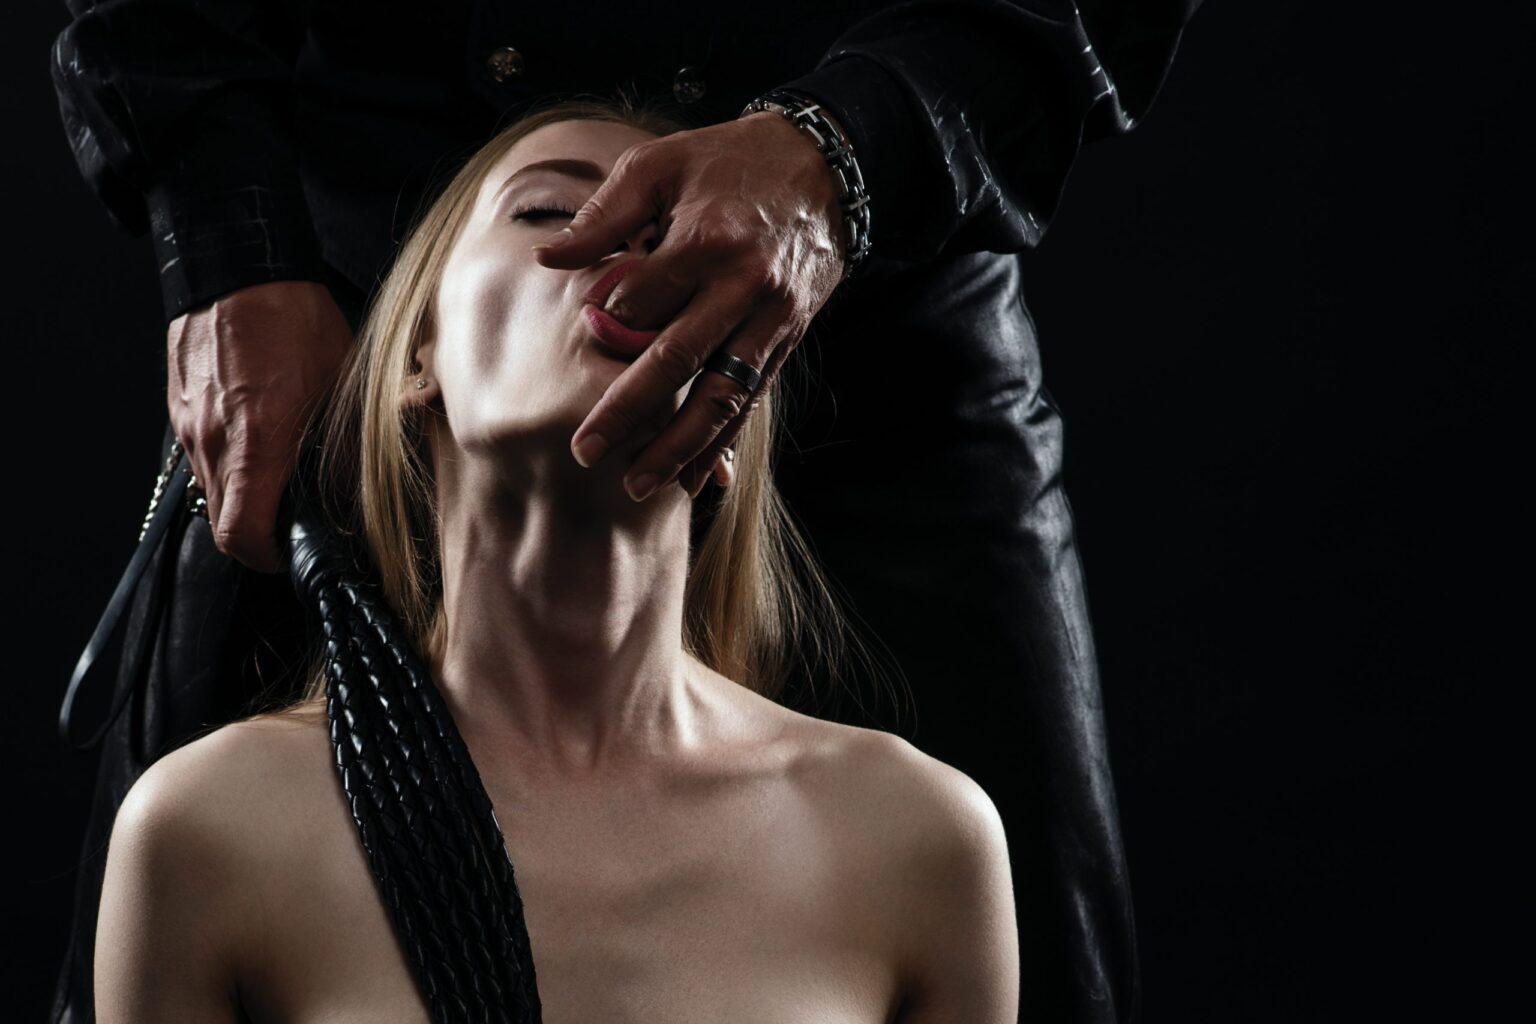 couple playing sexual games- man's finger in submissive's mouth